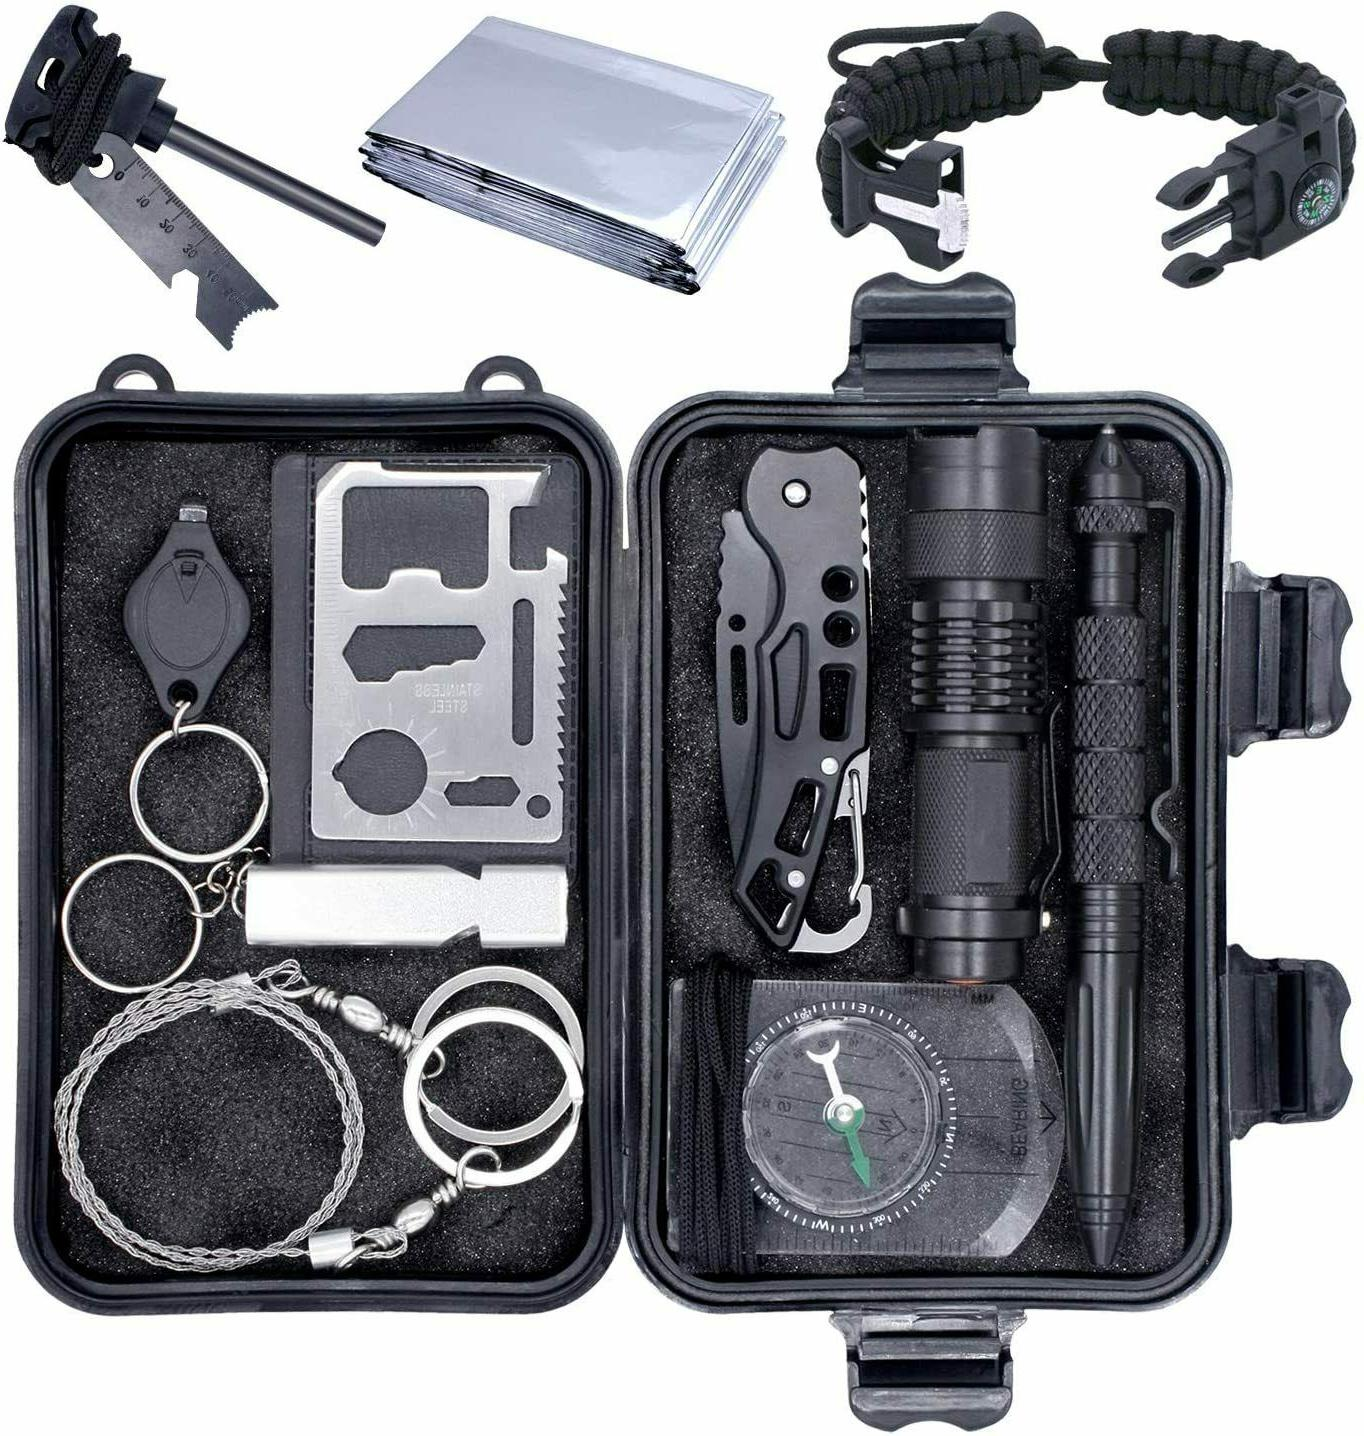 emergency outdoor survival gear kit camping hiking